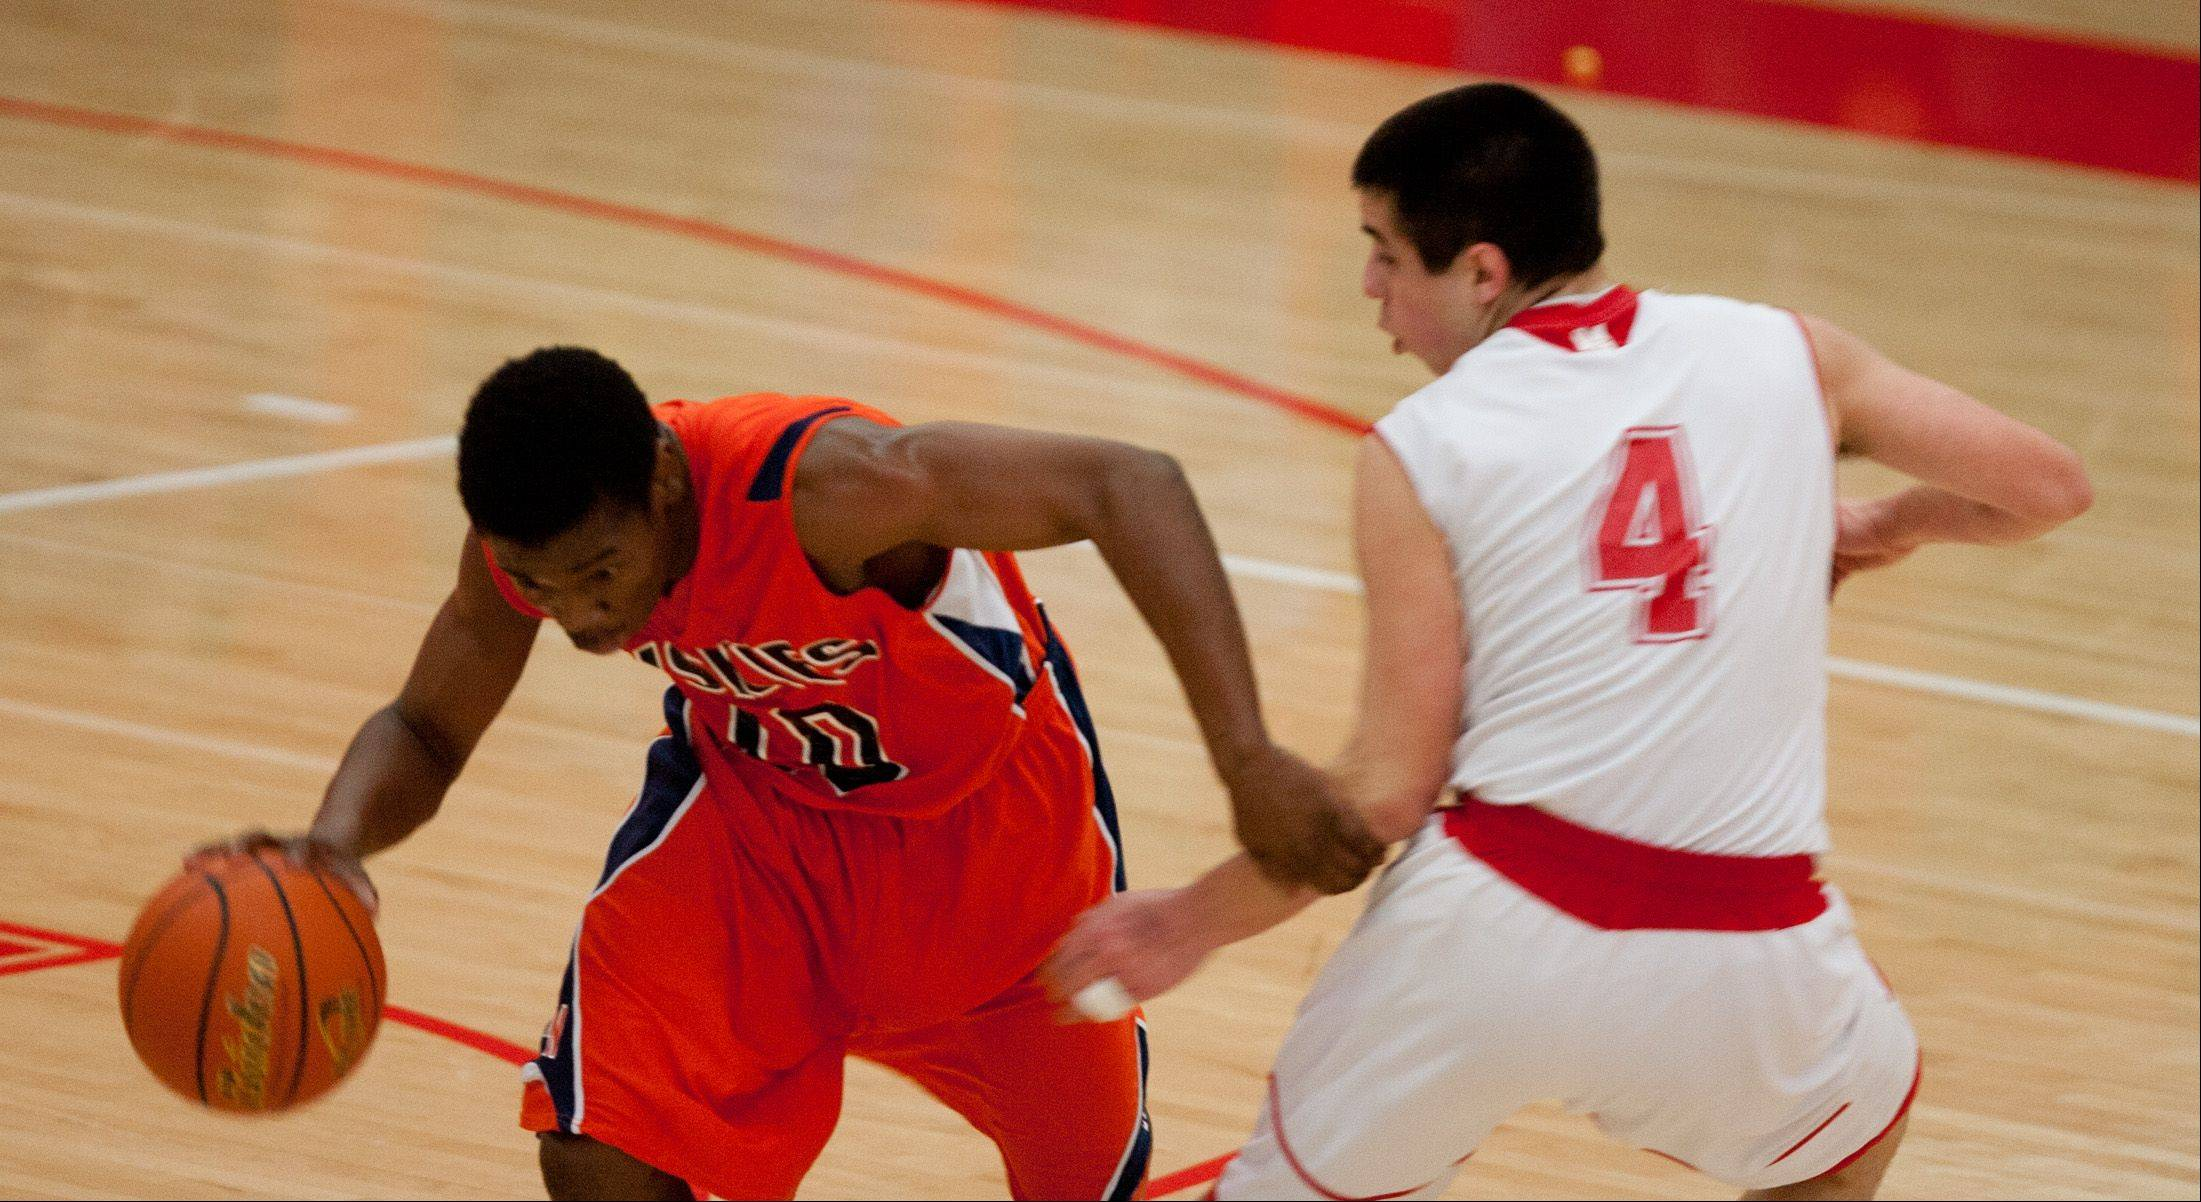 Daniel White/dwhite@dailyherald.com � Naperville North's Jelani McClain Jr., left, runs the offense as Naperville Central's Ryan Anthony (4), defends, during boys basketball action at Naperville Central High School.